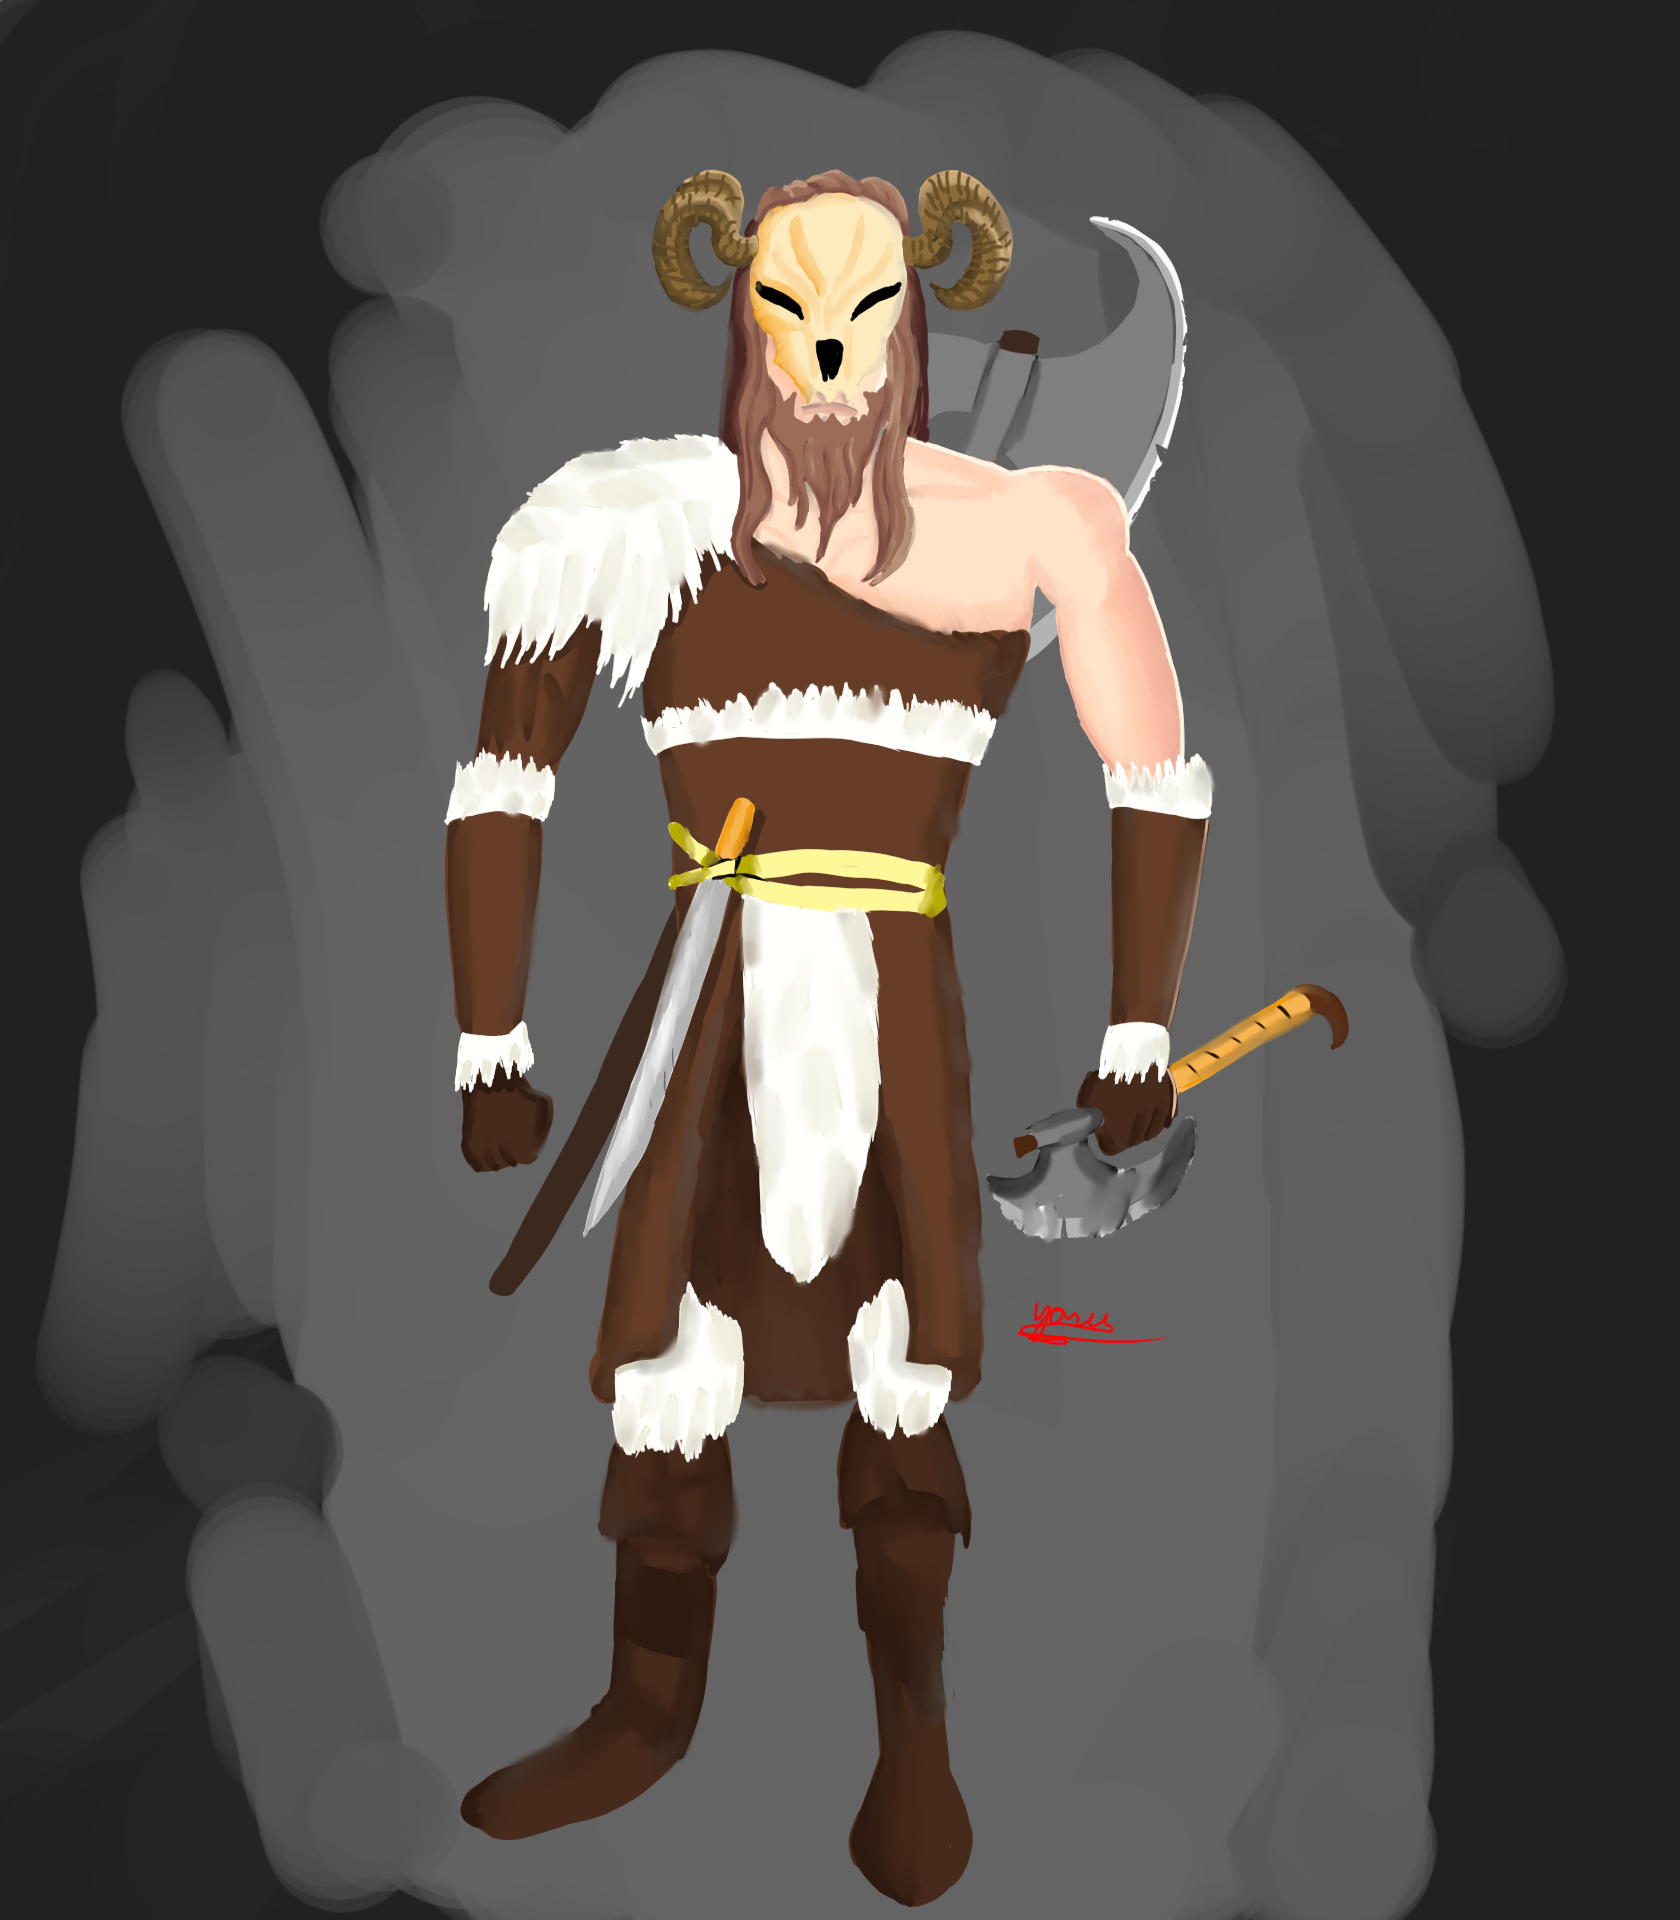 Some Barbarian